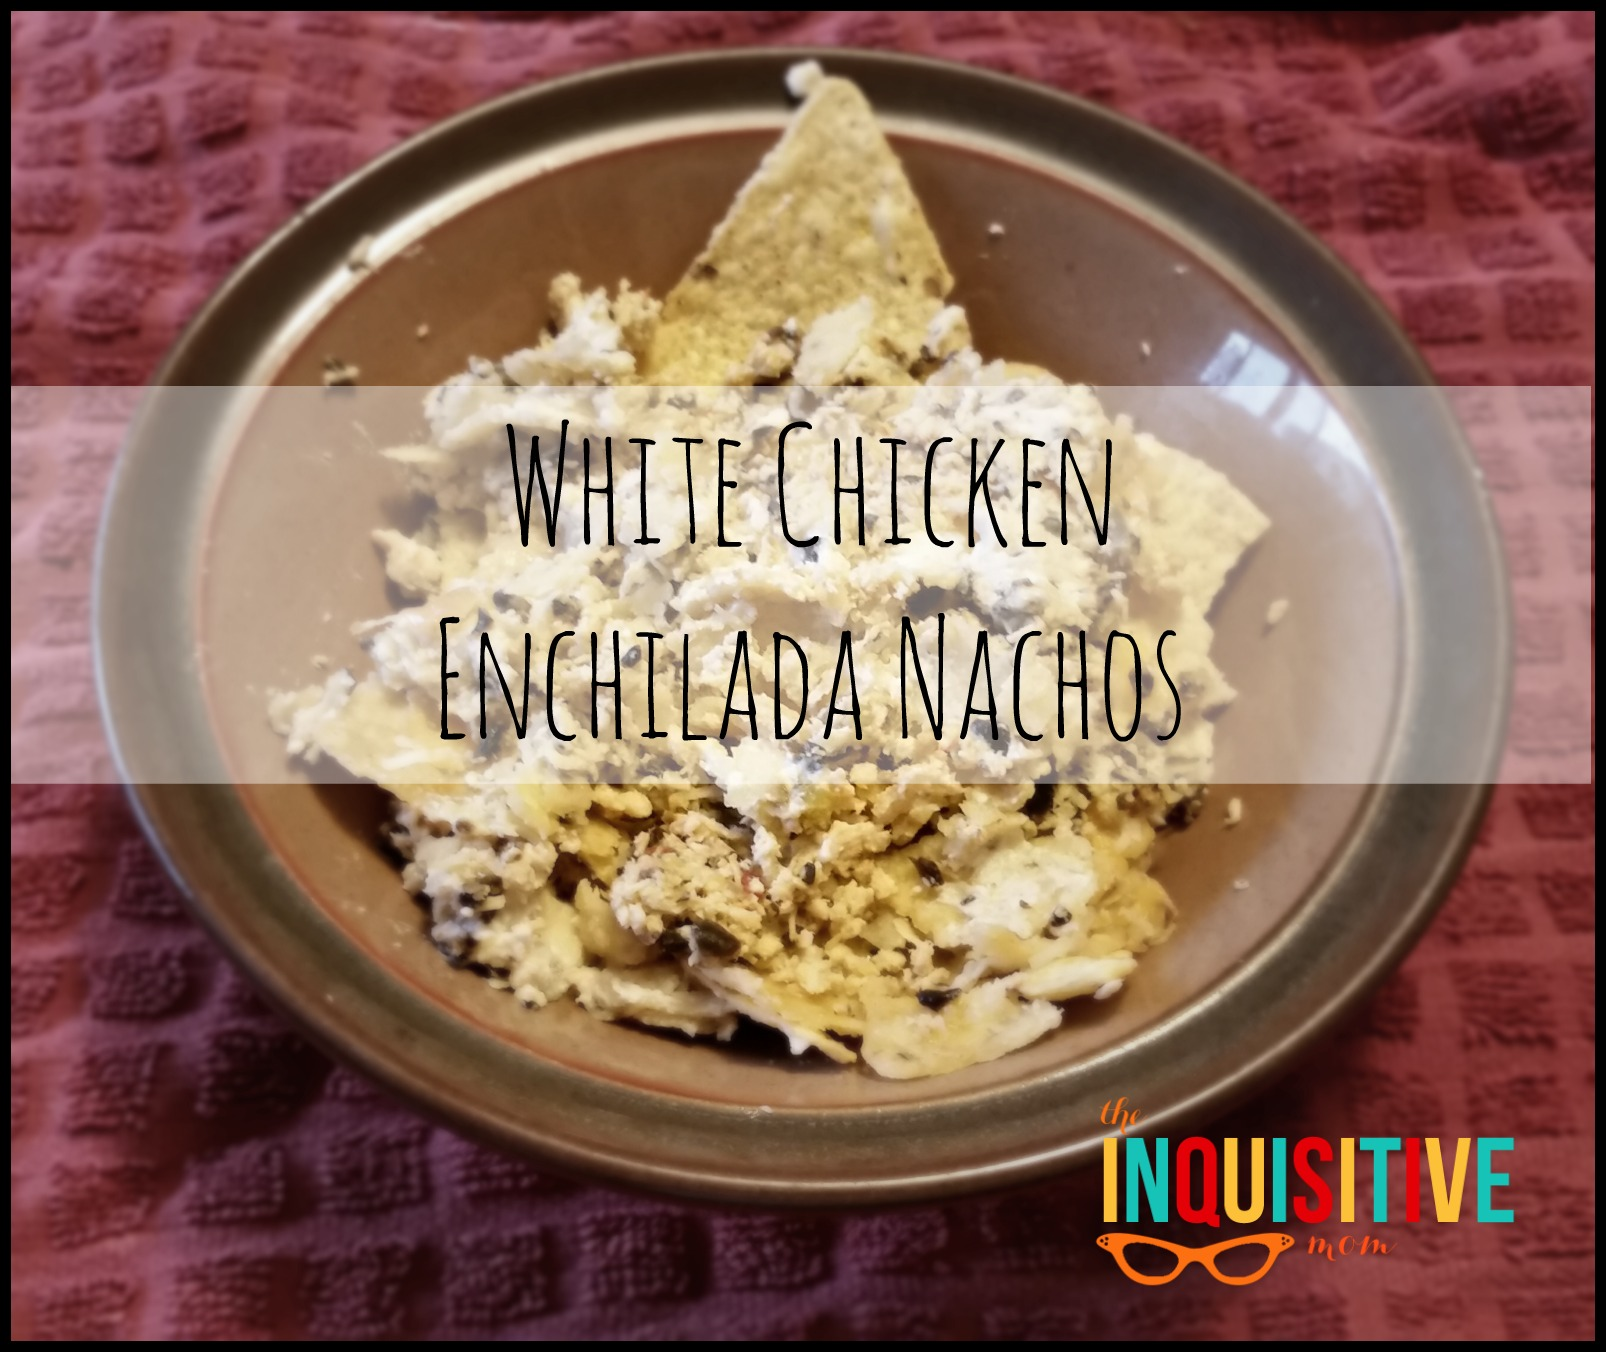 White Chicken Enchilada Nachos Recipe from The Inquisitive Mom. What if you could combine the cheesy crunch of nachos with the mildly spicy, creamy flavor of white chicken enchiladas?